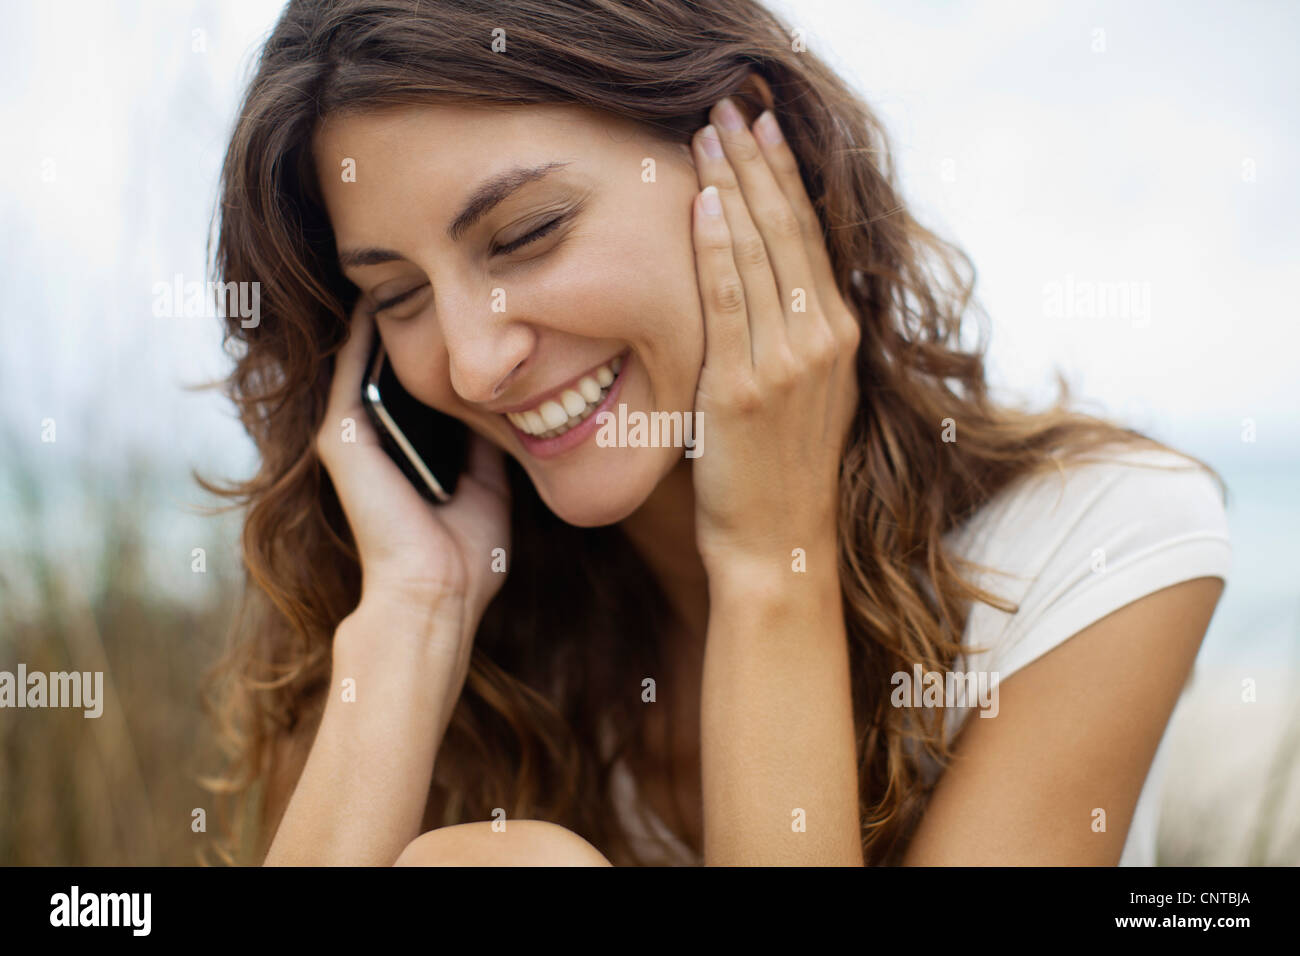 Happy young woman talking on cell phone, portrait - Stock Image